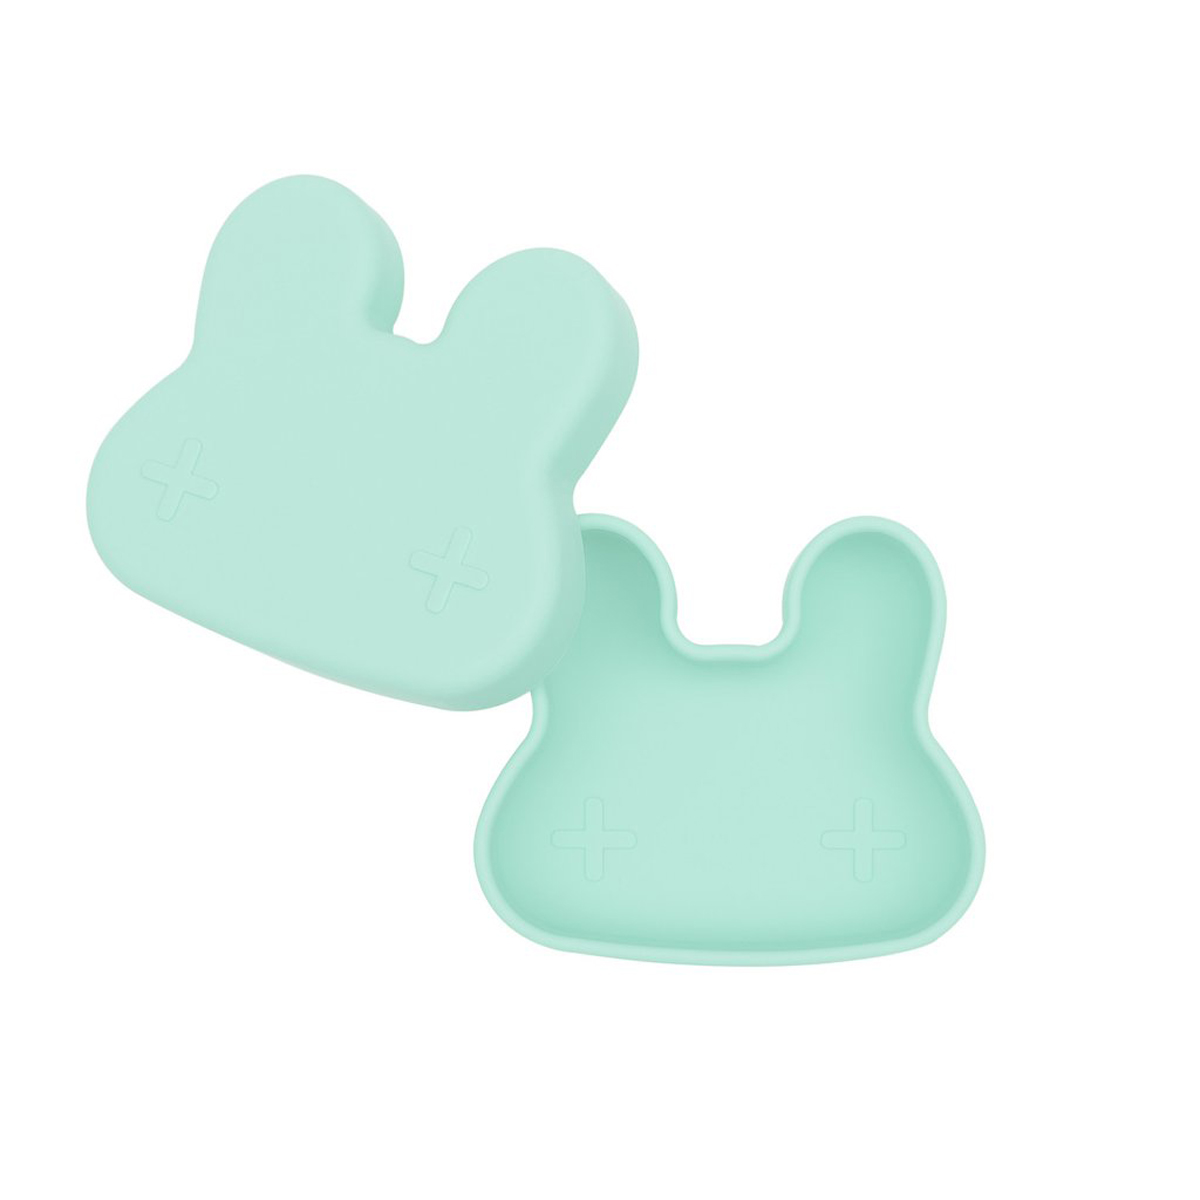 We Might be Tiny - Boîte à goûter en silicone lapin